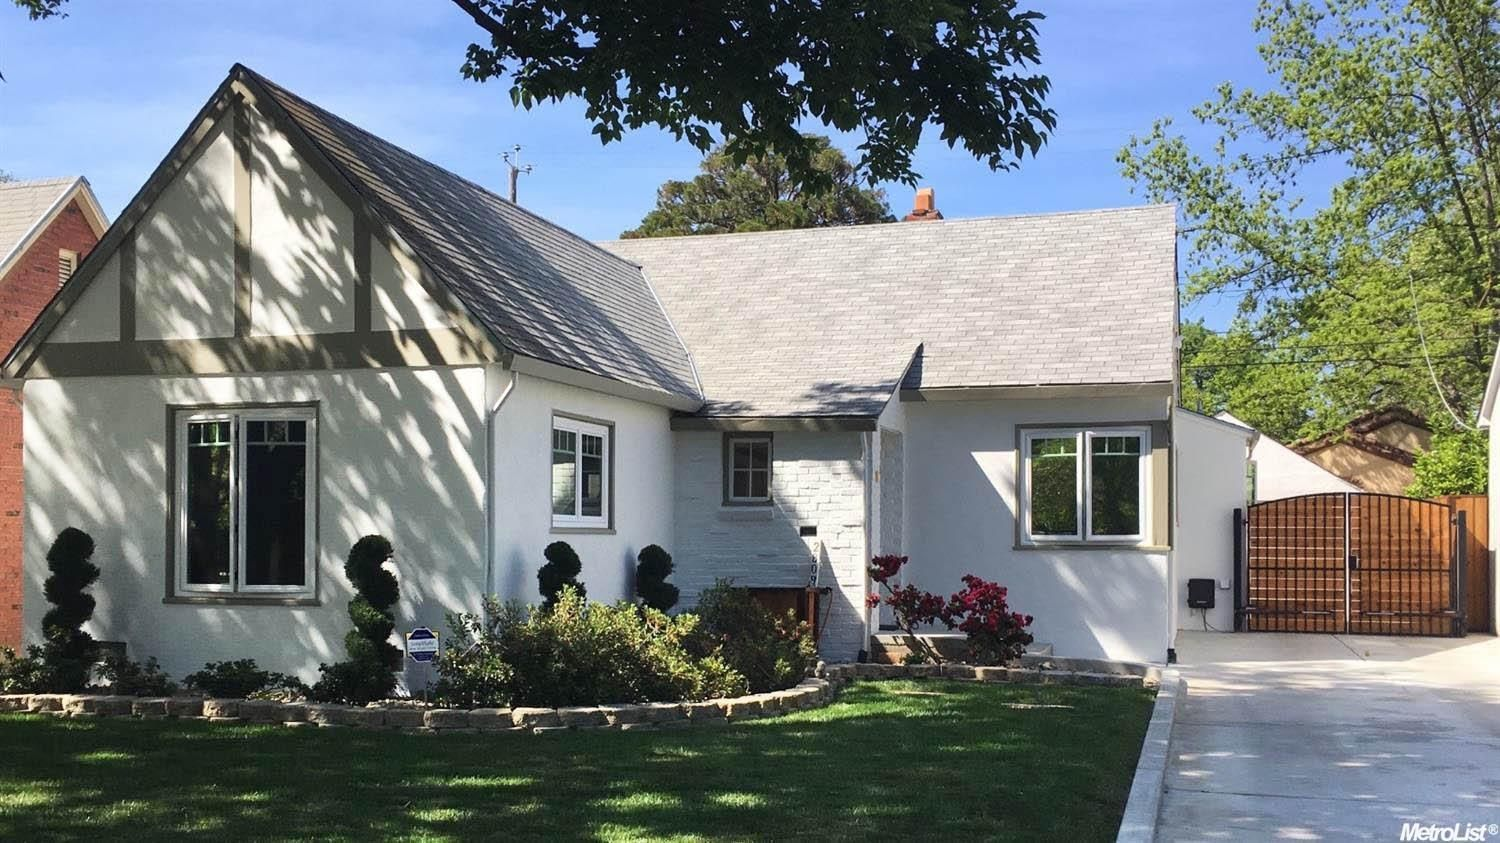 View property details for 2809 4th Avenue, Sacramento, CA. 2809 4th Avenue is a Single Family property with 2 bedrooms and 1 total baths for sale at $539,990. MLS# 16023577.